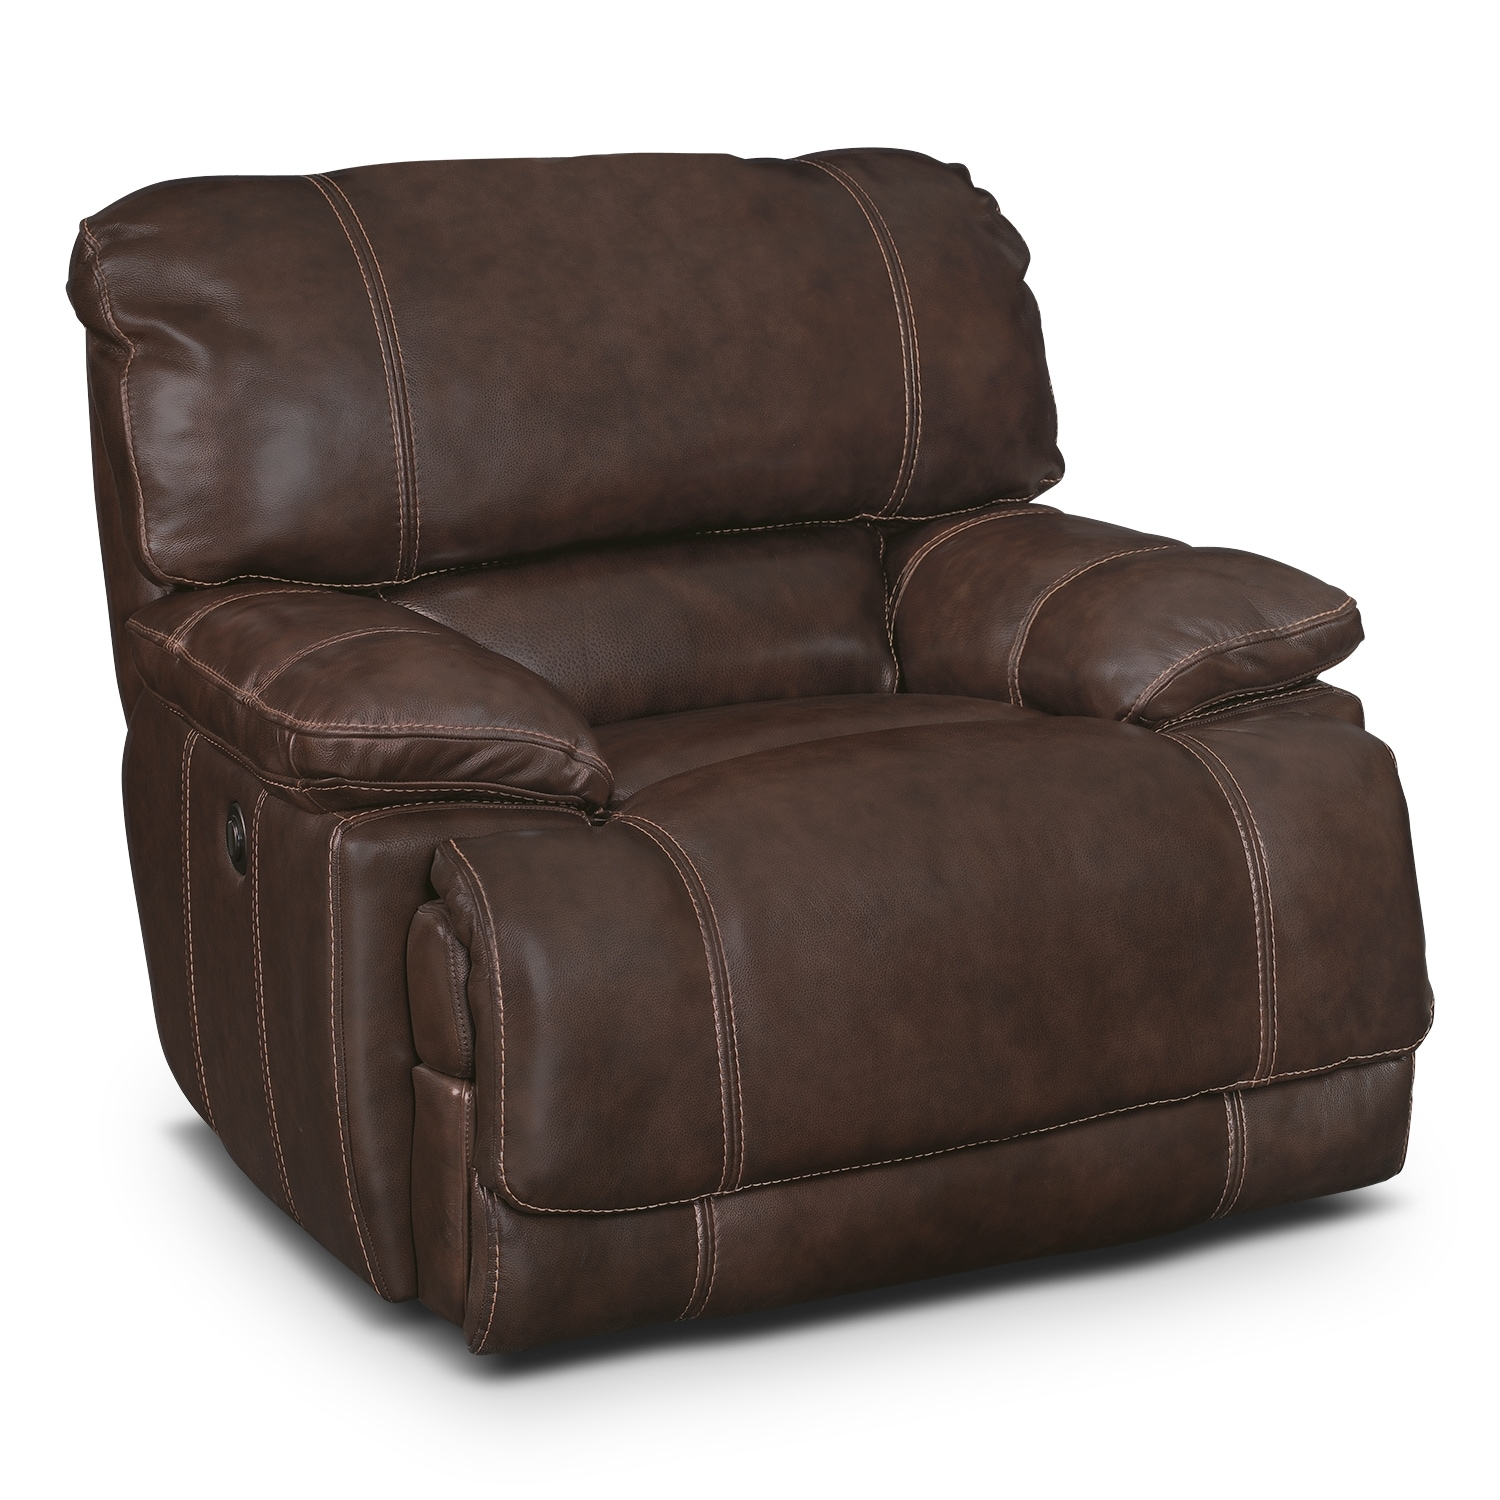 Living Room Furniture - Clinton Brown Power Recliner